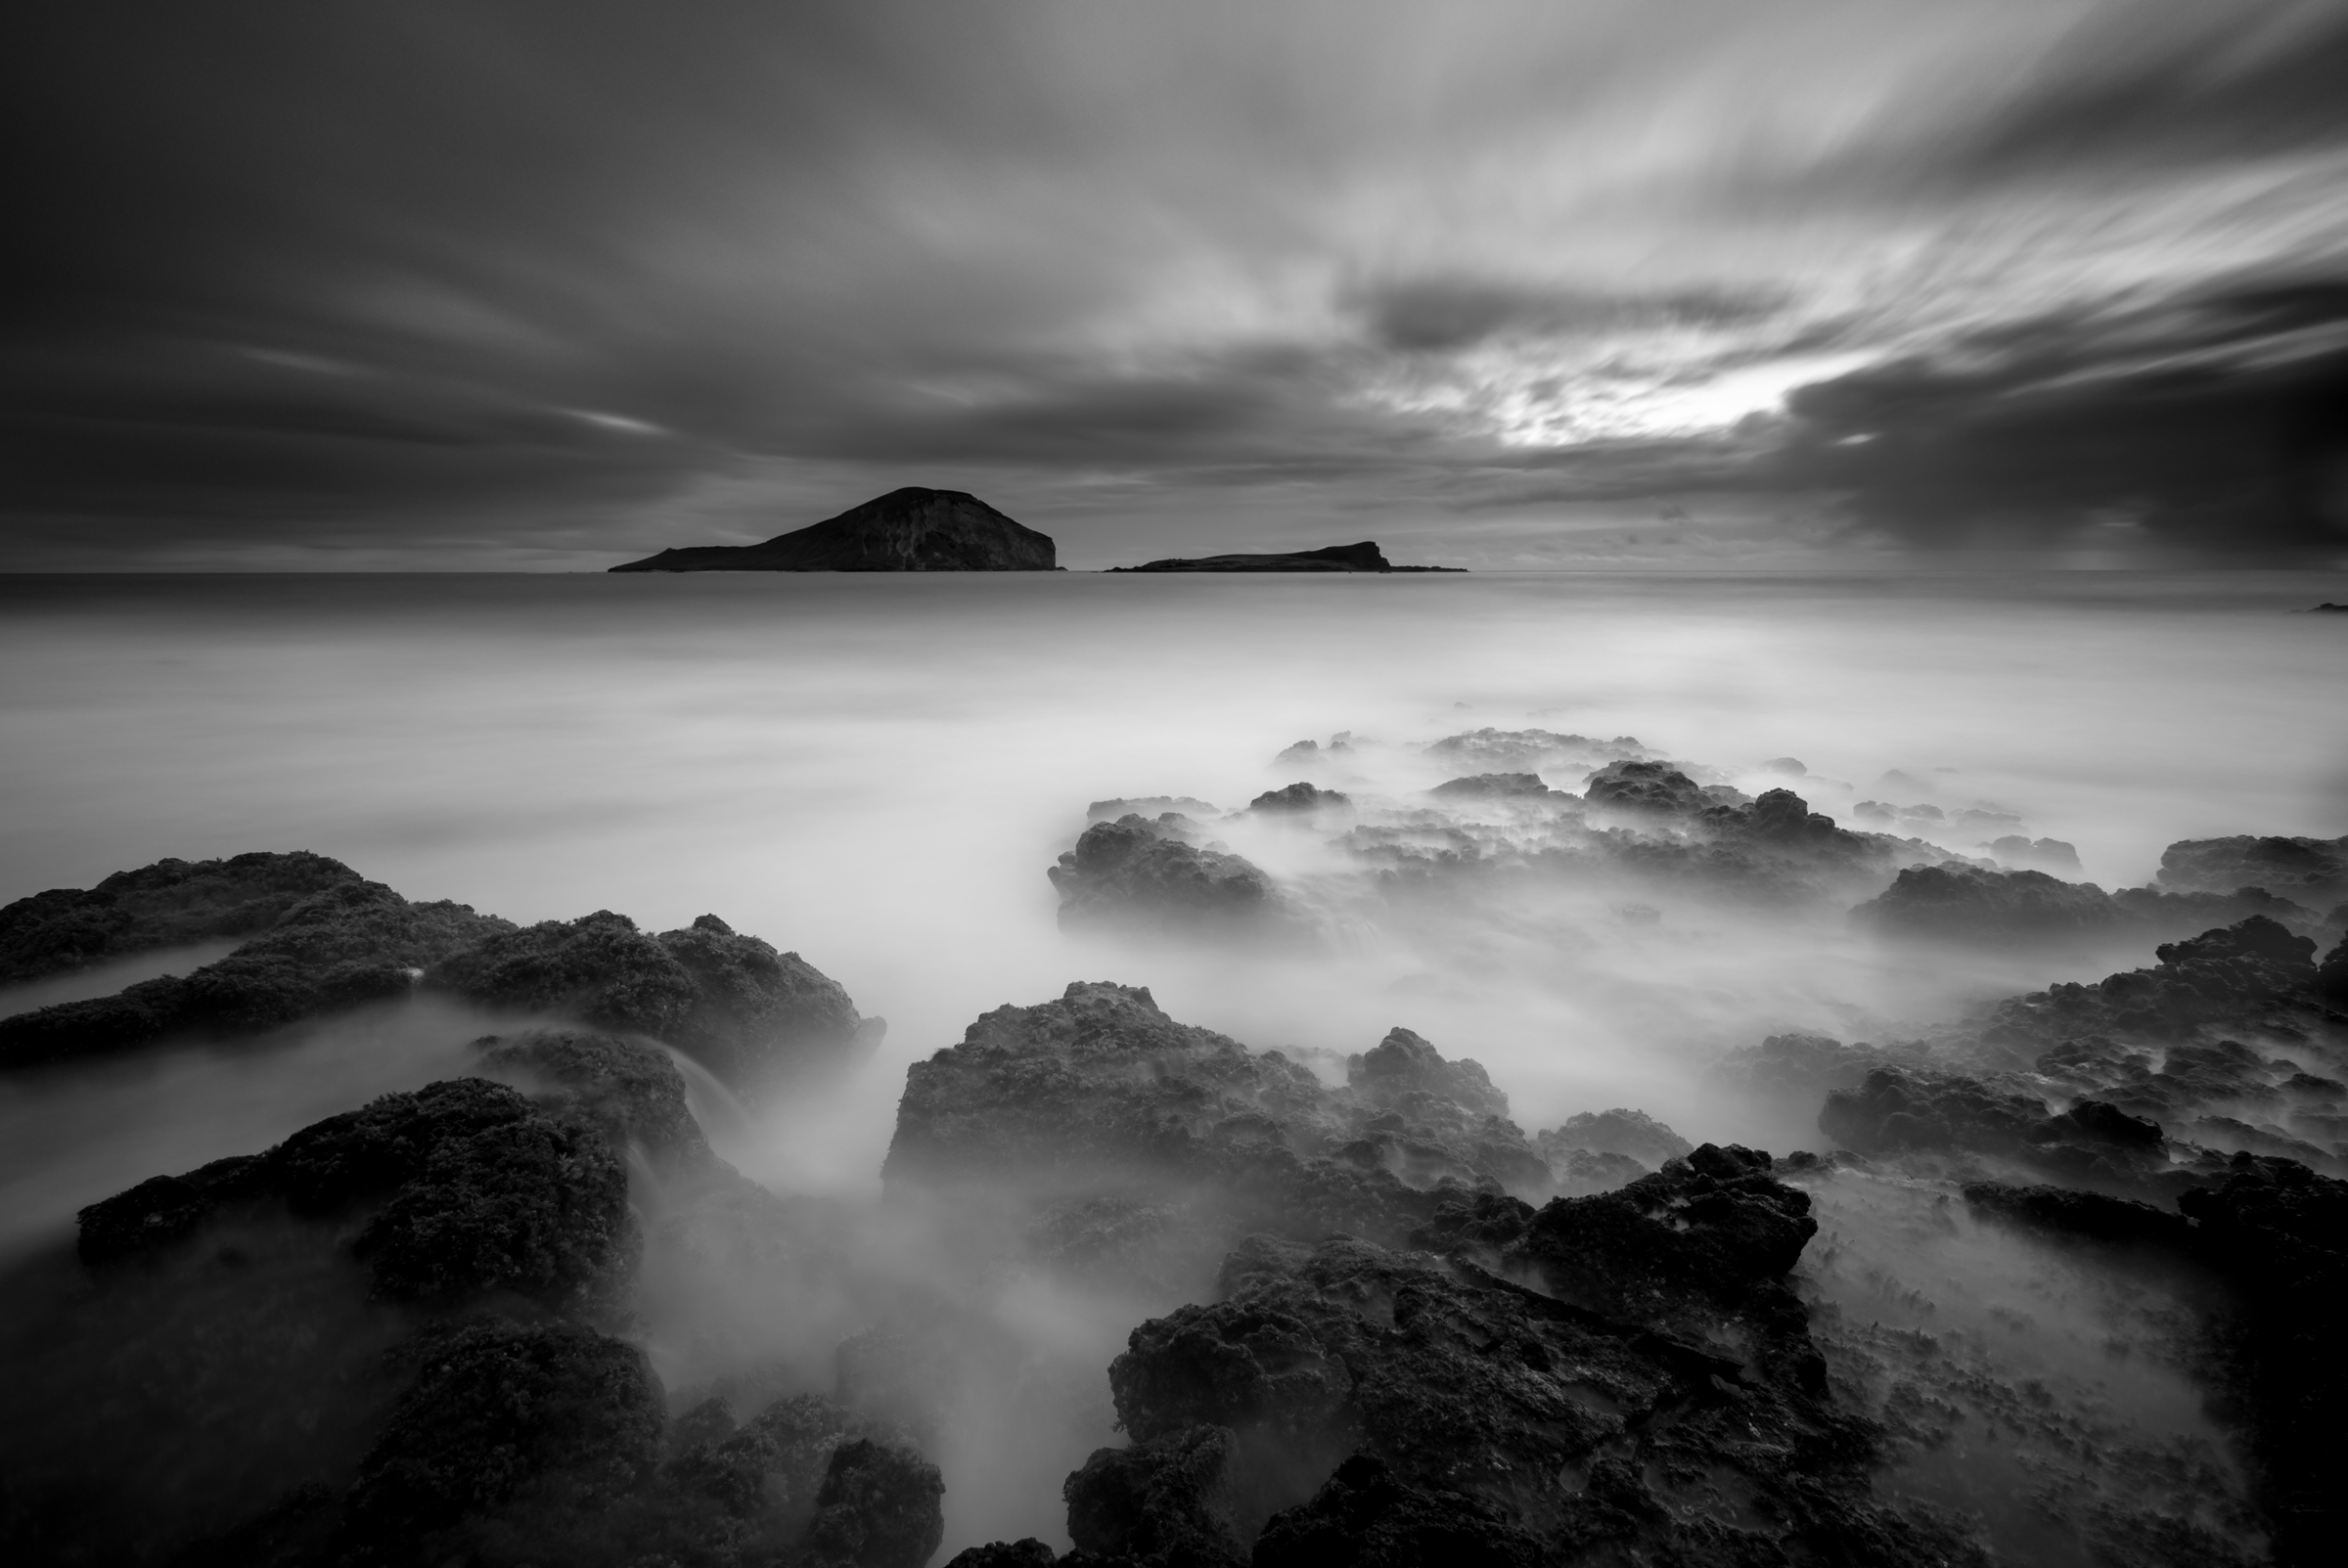 Sunrise at Makapuu Beach Park Oahu, Hawaii Stacked Lee Little Stopper &3 stop hard grad Sony A7S II |  121 sec. |  f/8 |  ISO 50  |  Sony 16-35mm f/4 Edited in Lightroom CC 2015  Copyright 2016 Ryan Sakamoto, All rights reserved